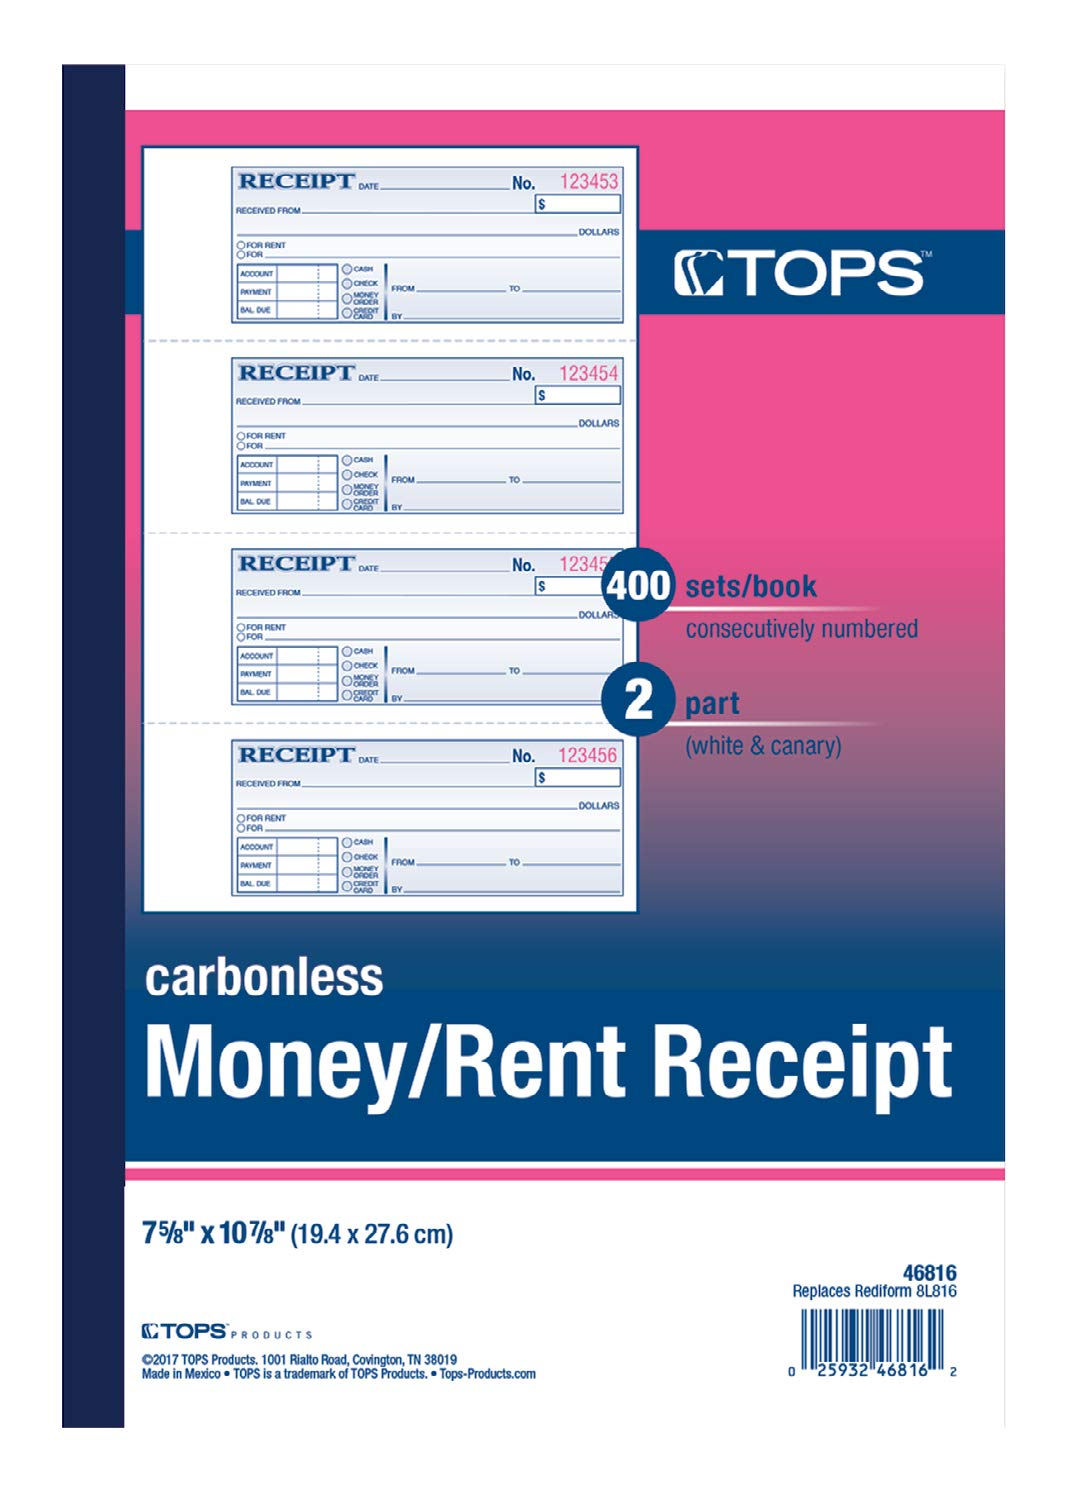 TOPS Money Receipt Book, 2-Part, Carbonless, 2-3/4 x 7-1/8 Inches, 4 Receipts per Page, 400 Sets per Book (46816) by Tops (Image #2)